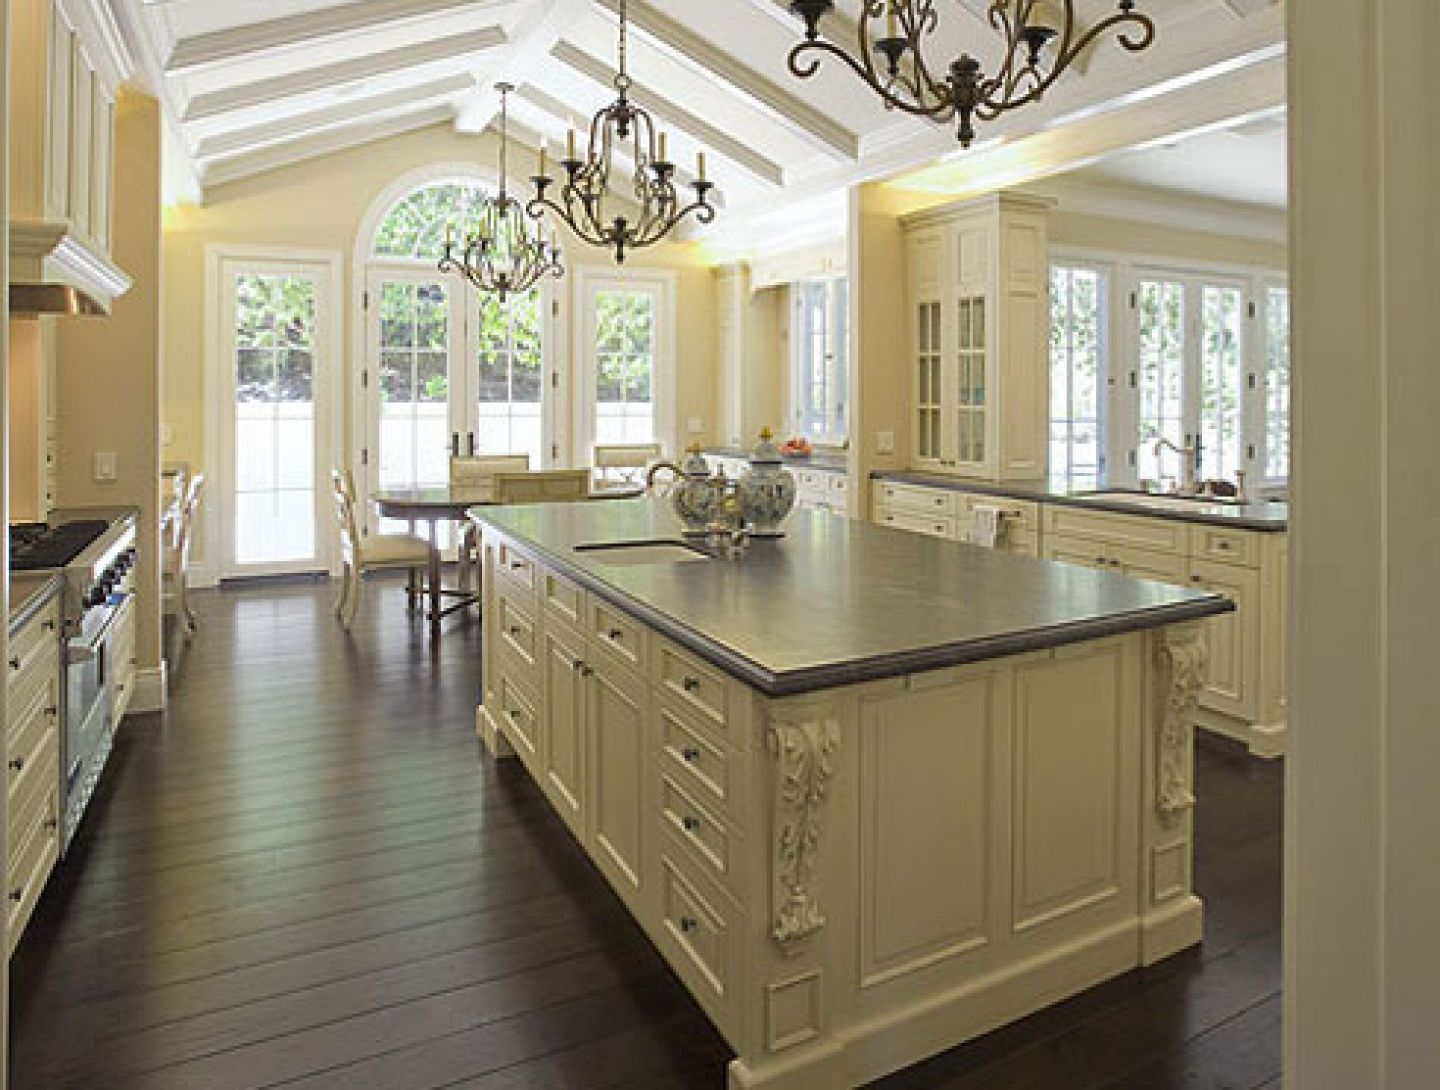 Find This Pin And More On French Provincial Style Kitchens By Kitchensrk.